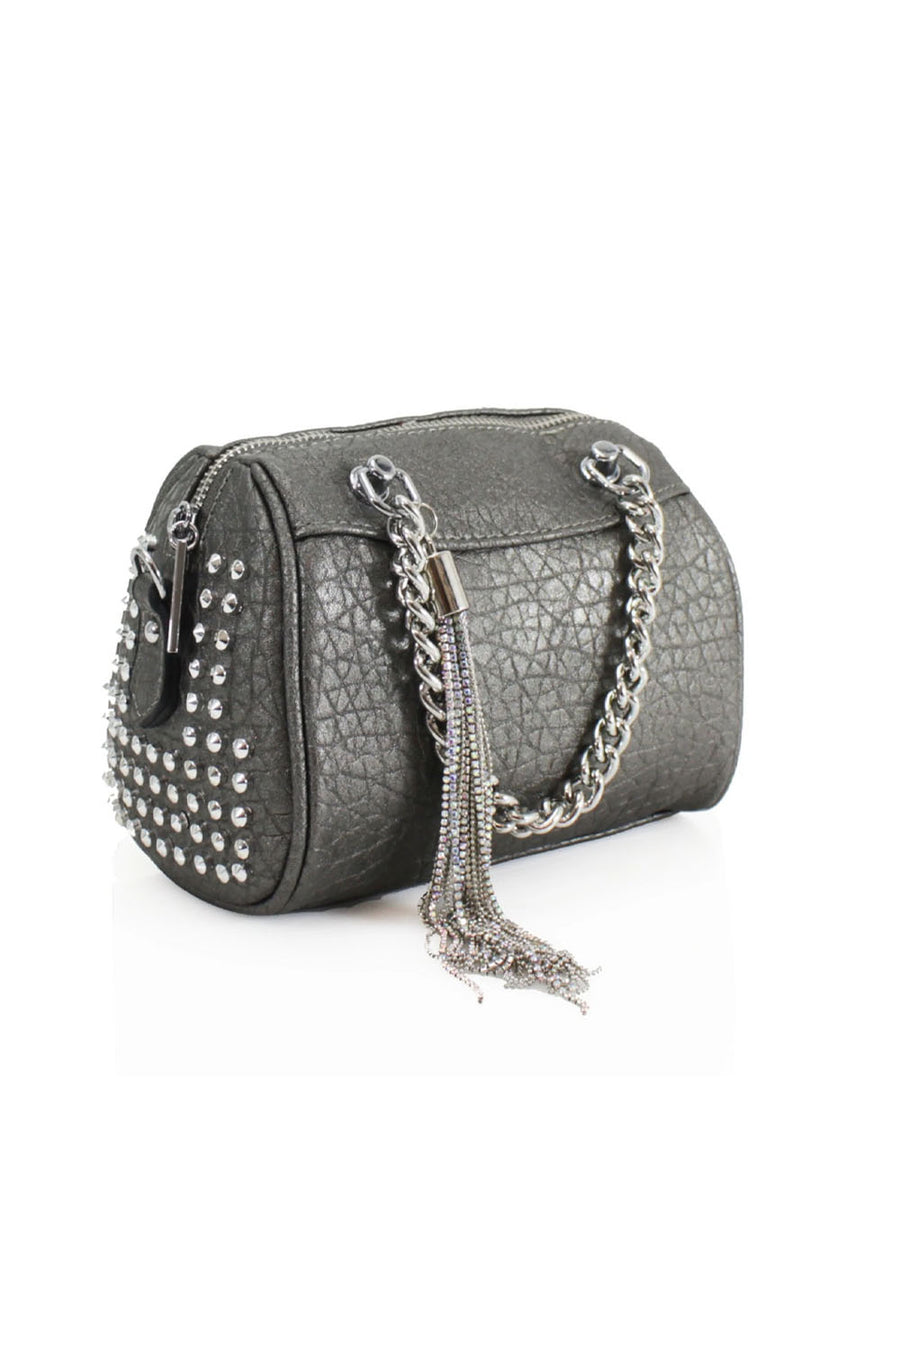 Dark Grey Studded Chain Bag - Piper